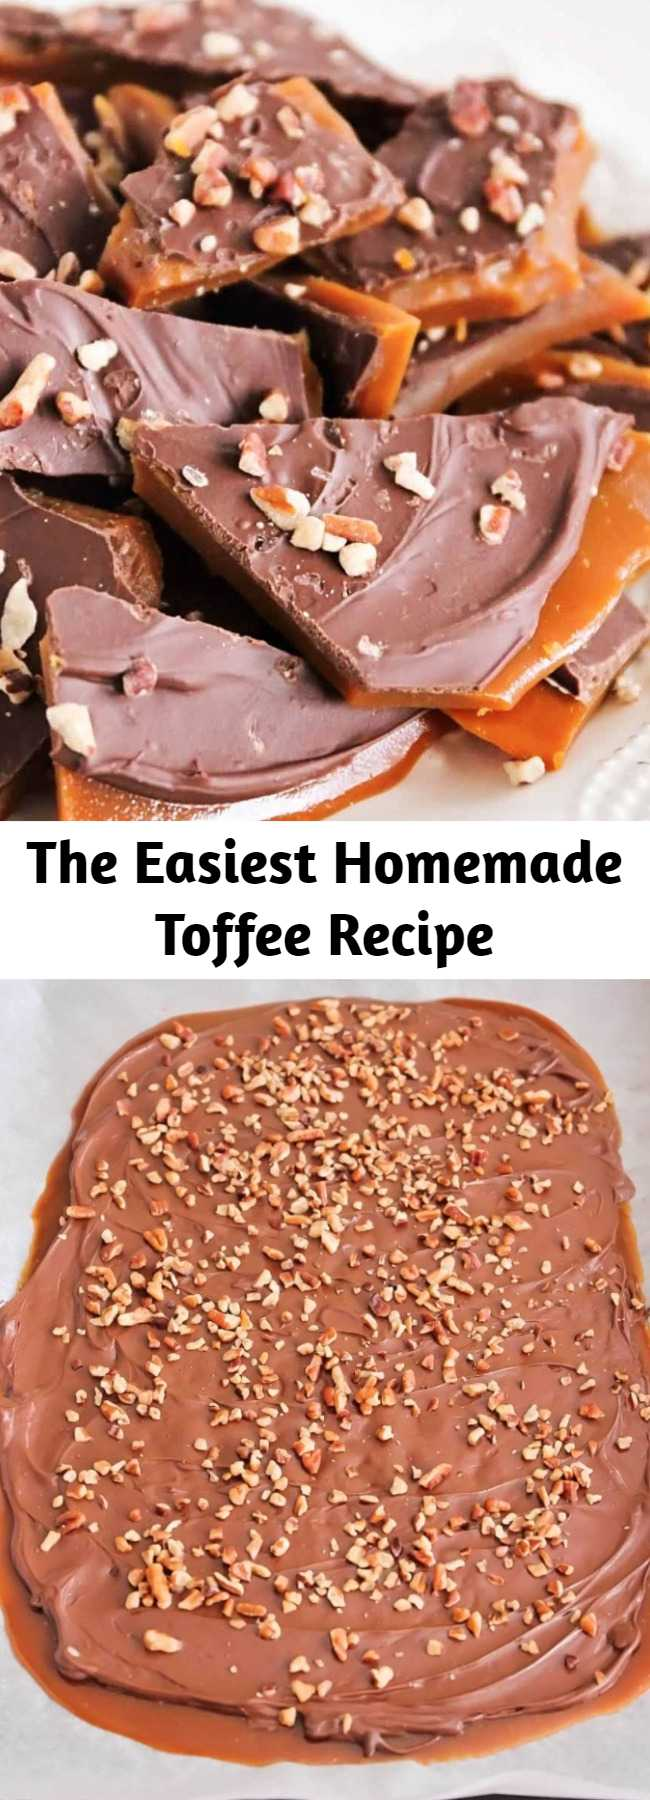 The Easiest Homemade Toffee Recipe - This rich and buttery toffee takes only thirty minutes to make and is super easy, too! Perfect for parties, holiday gifts, and snacking! #toffee #candy #desserts #holidays #christmas #howtomake